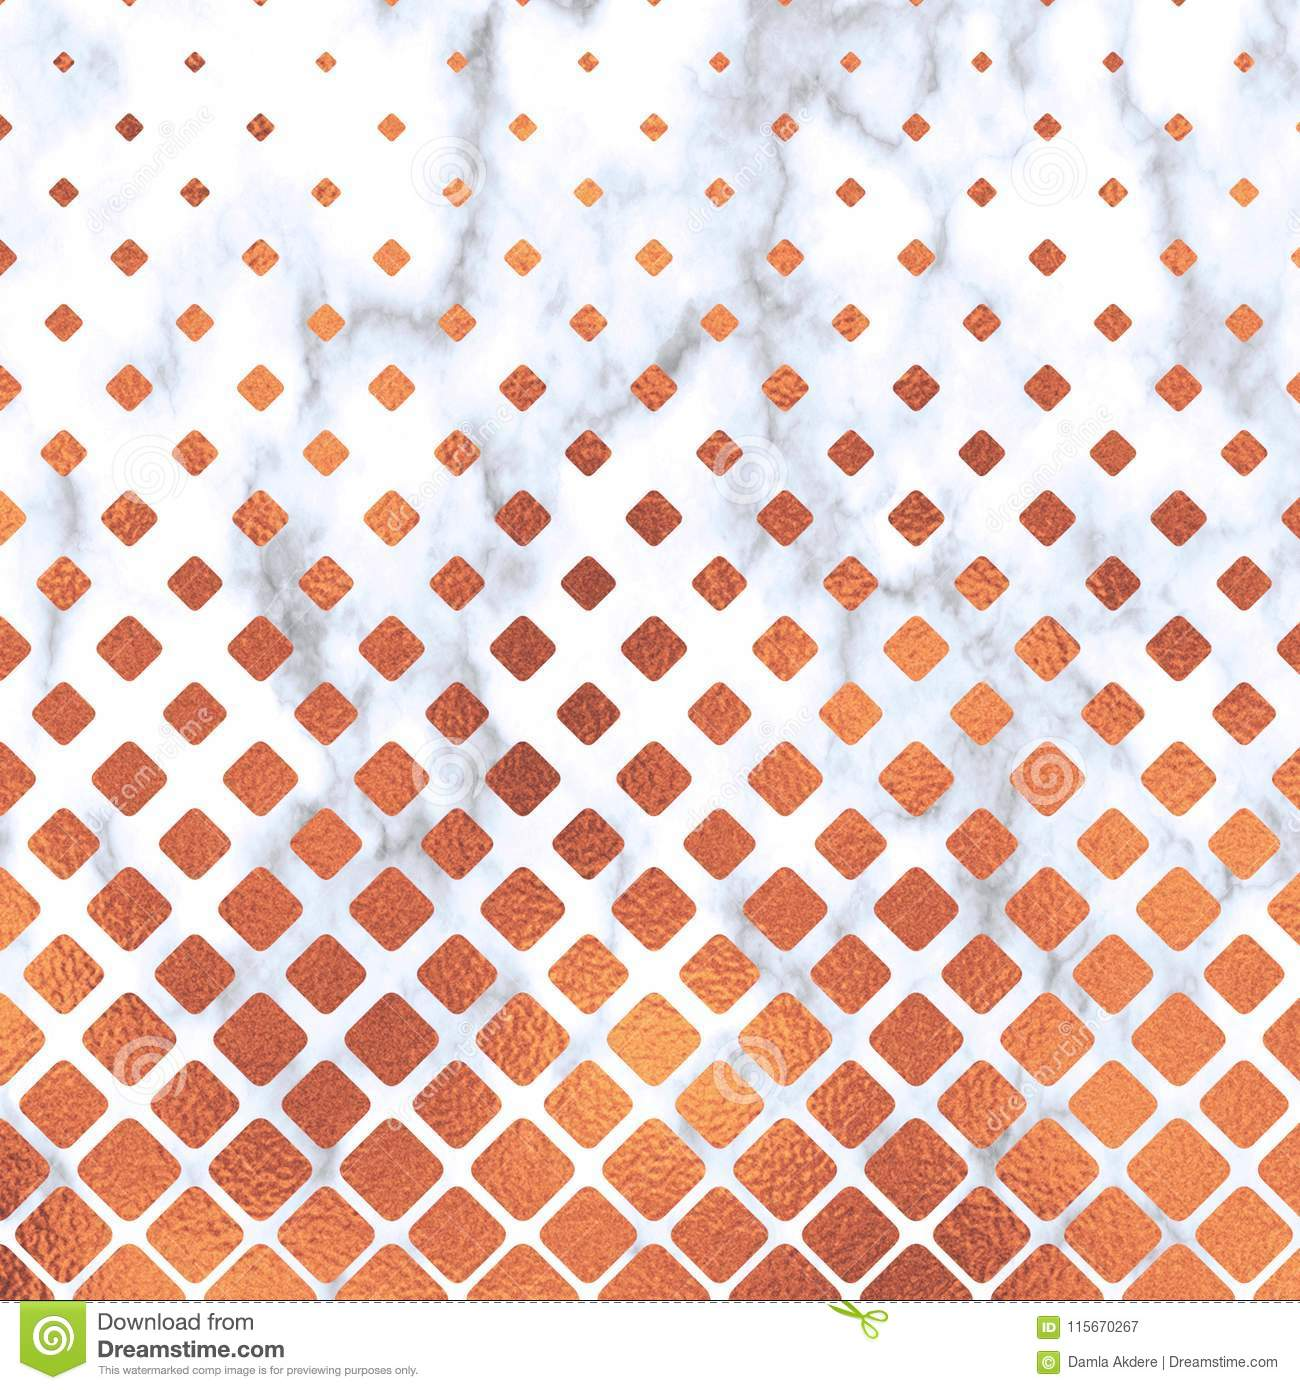 Rose Gold Square On Marble Background Rose Gold Texture Rose Gold Geometric Marble Pattern Rose Gold Marble Wallpaper Stock Illustration Illustration Of Pattern Postcards 115670267